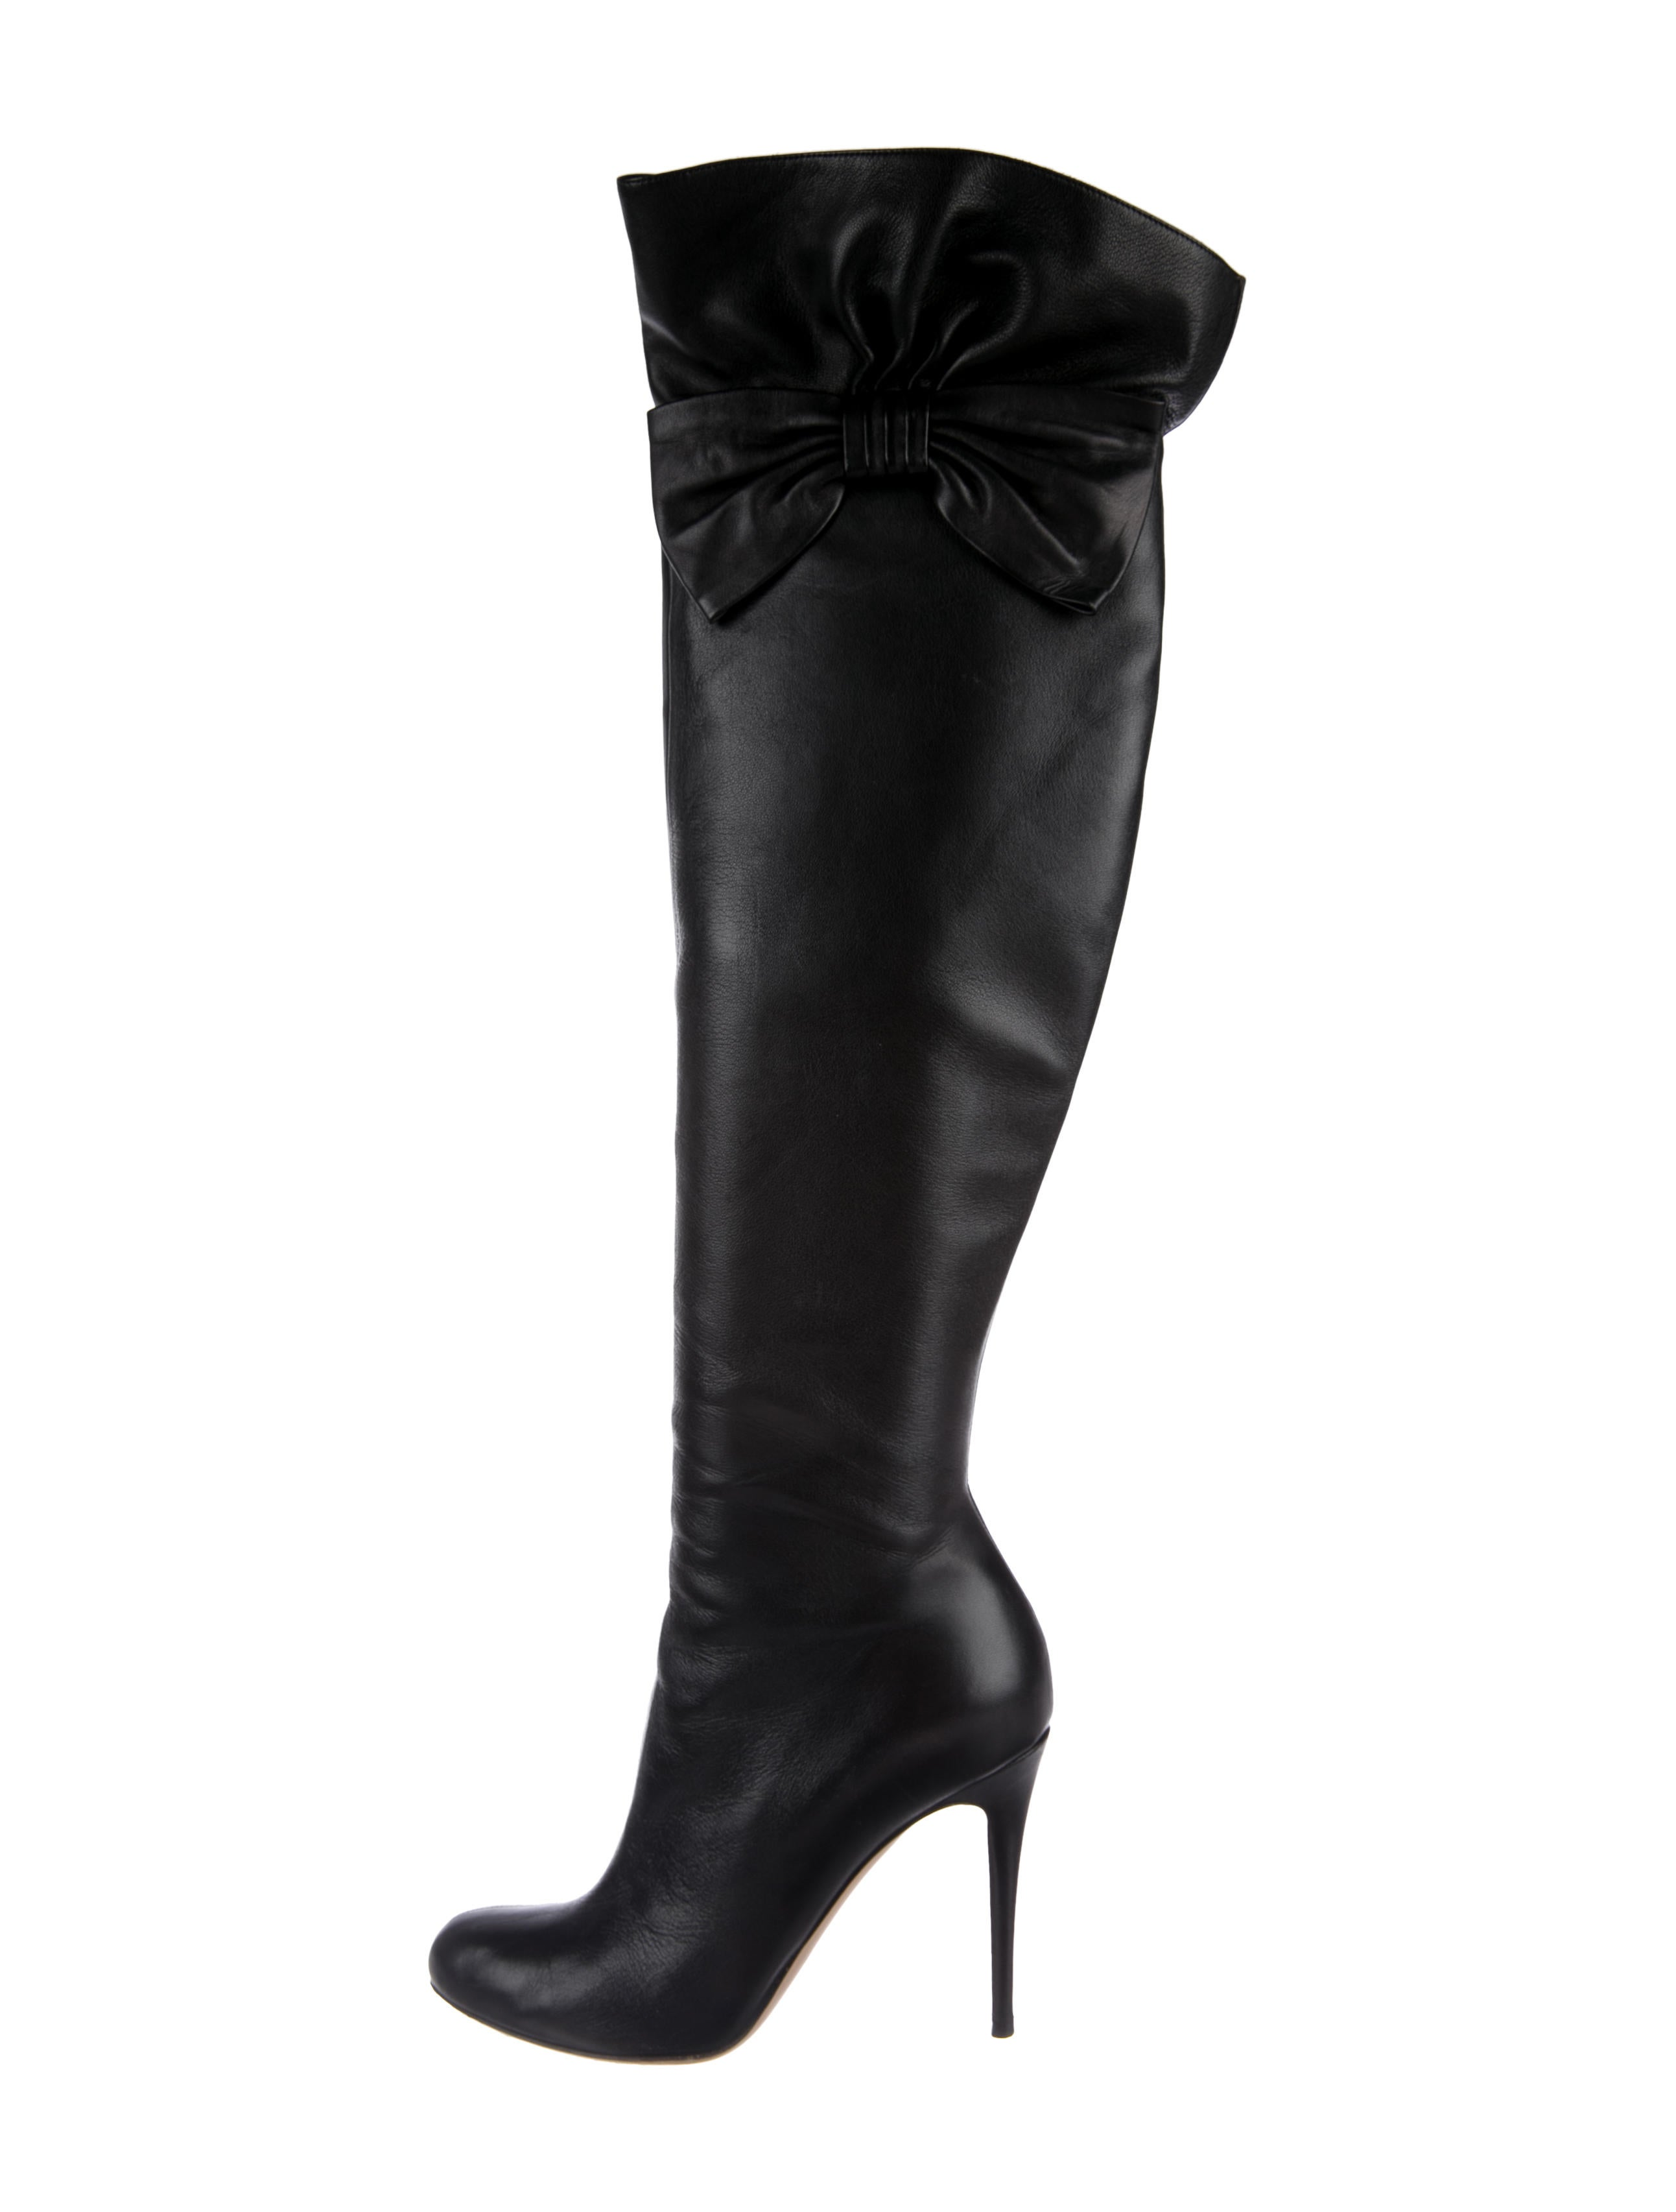 ebay sale online Valentino Bow-Accented Over-The-Knee Boots cheap sale big sale official for sale aJ3Bo7V